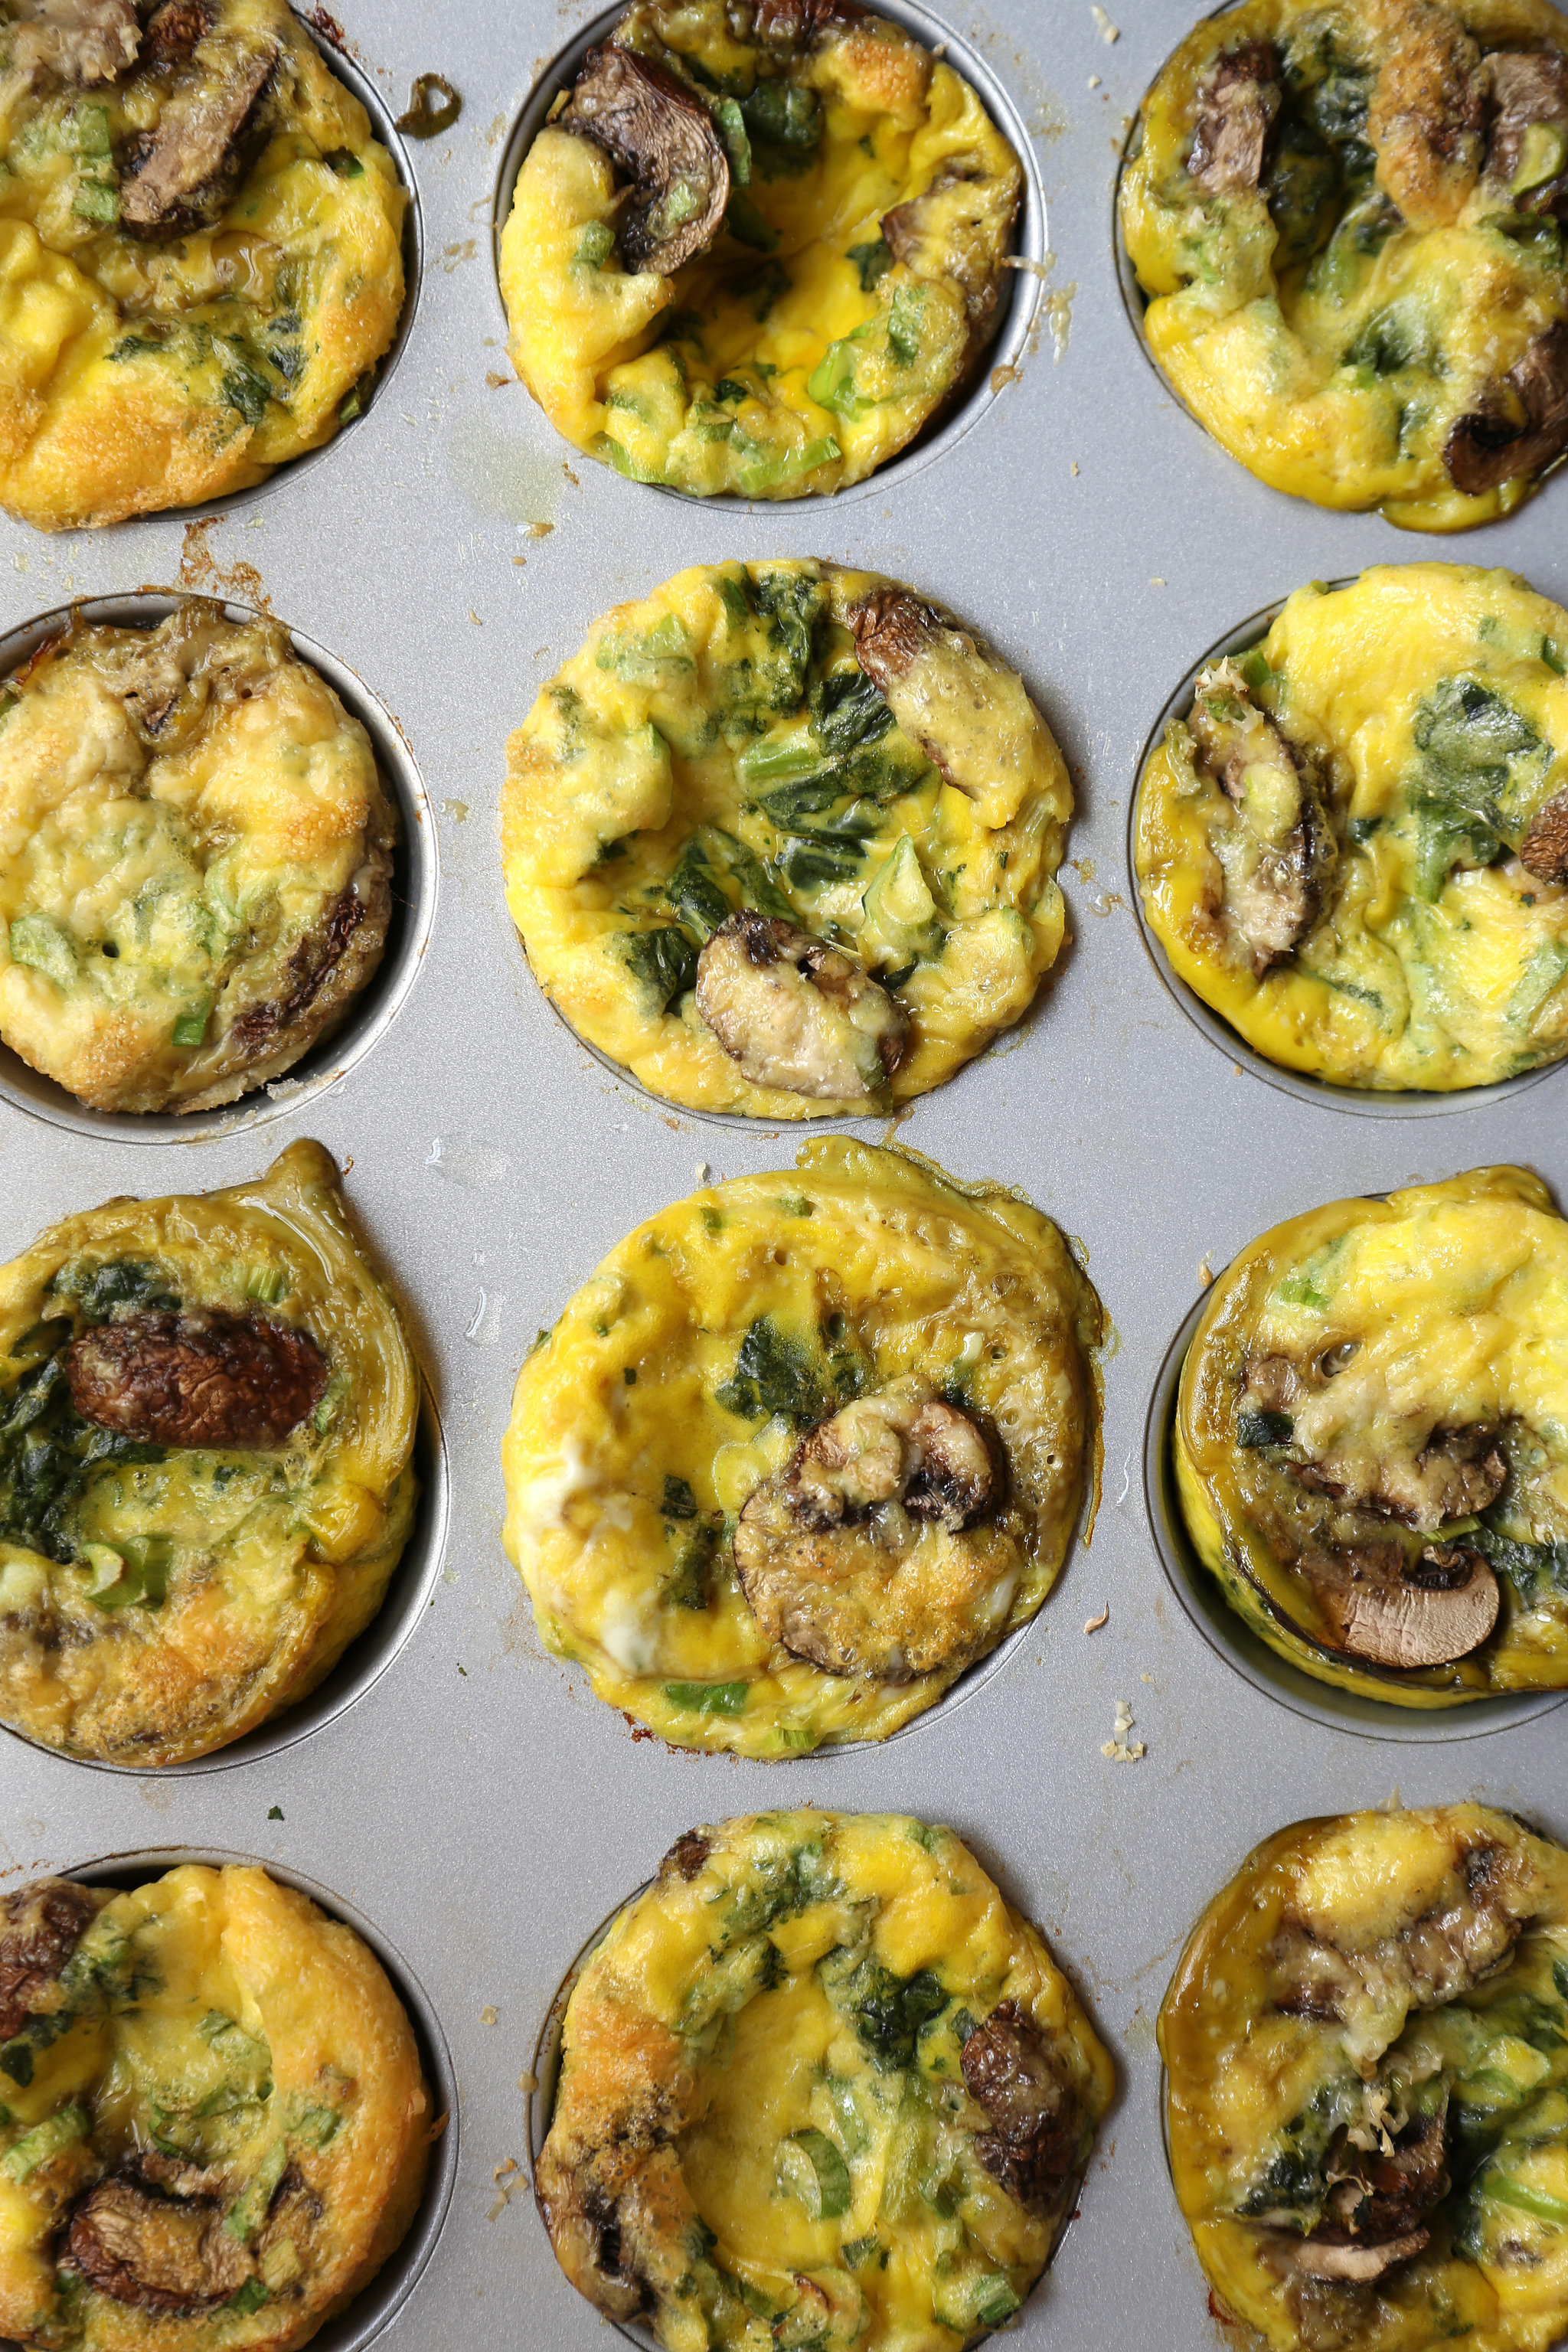 Every Busy Person Needs This Cheesy Egg Muffin Recipe | POPSUGAR ...